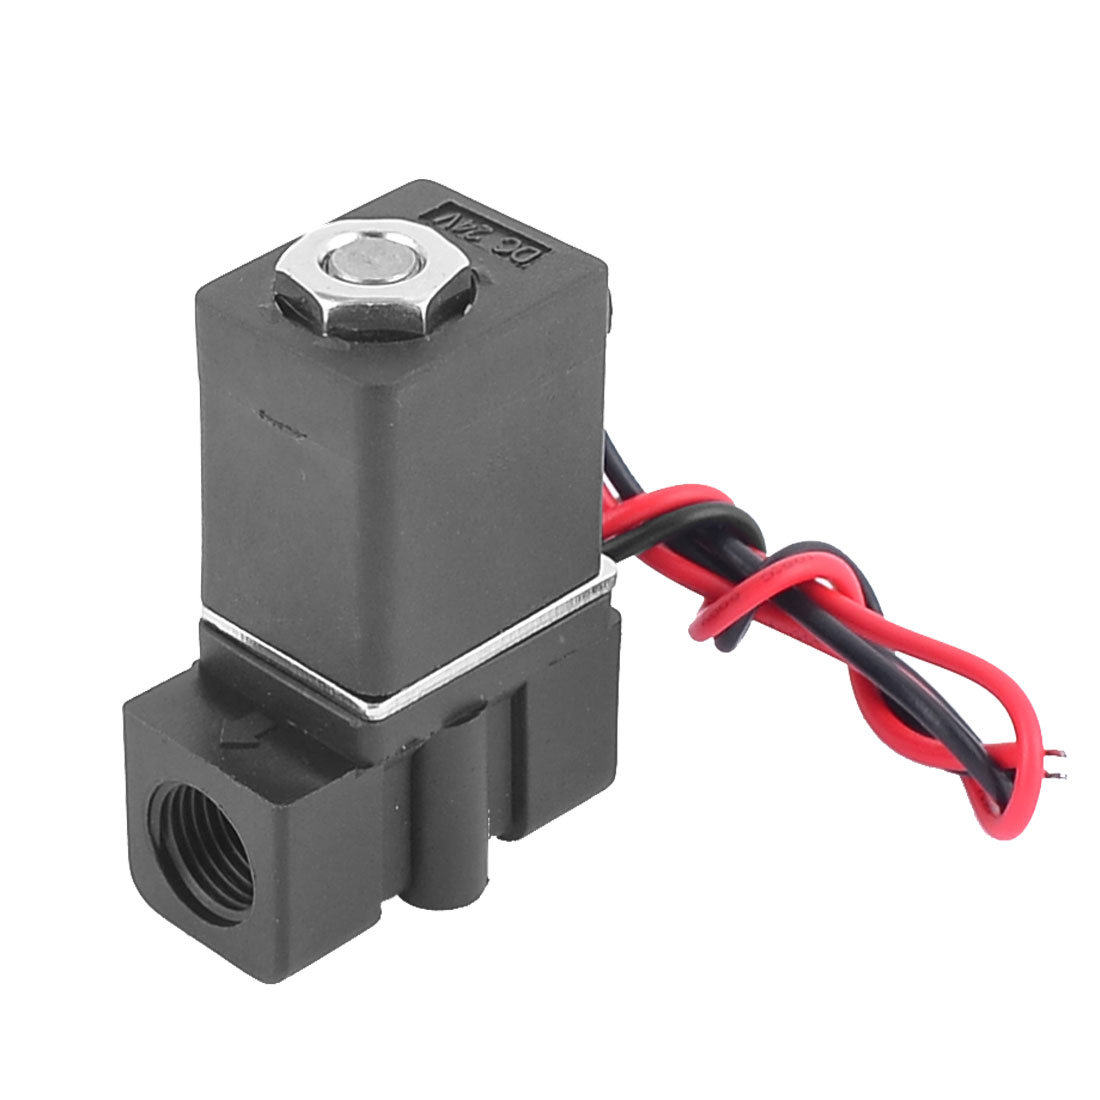 24VDC 6.0W Direct Acting Wired Electrical Solenoid Valve Black